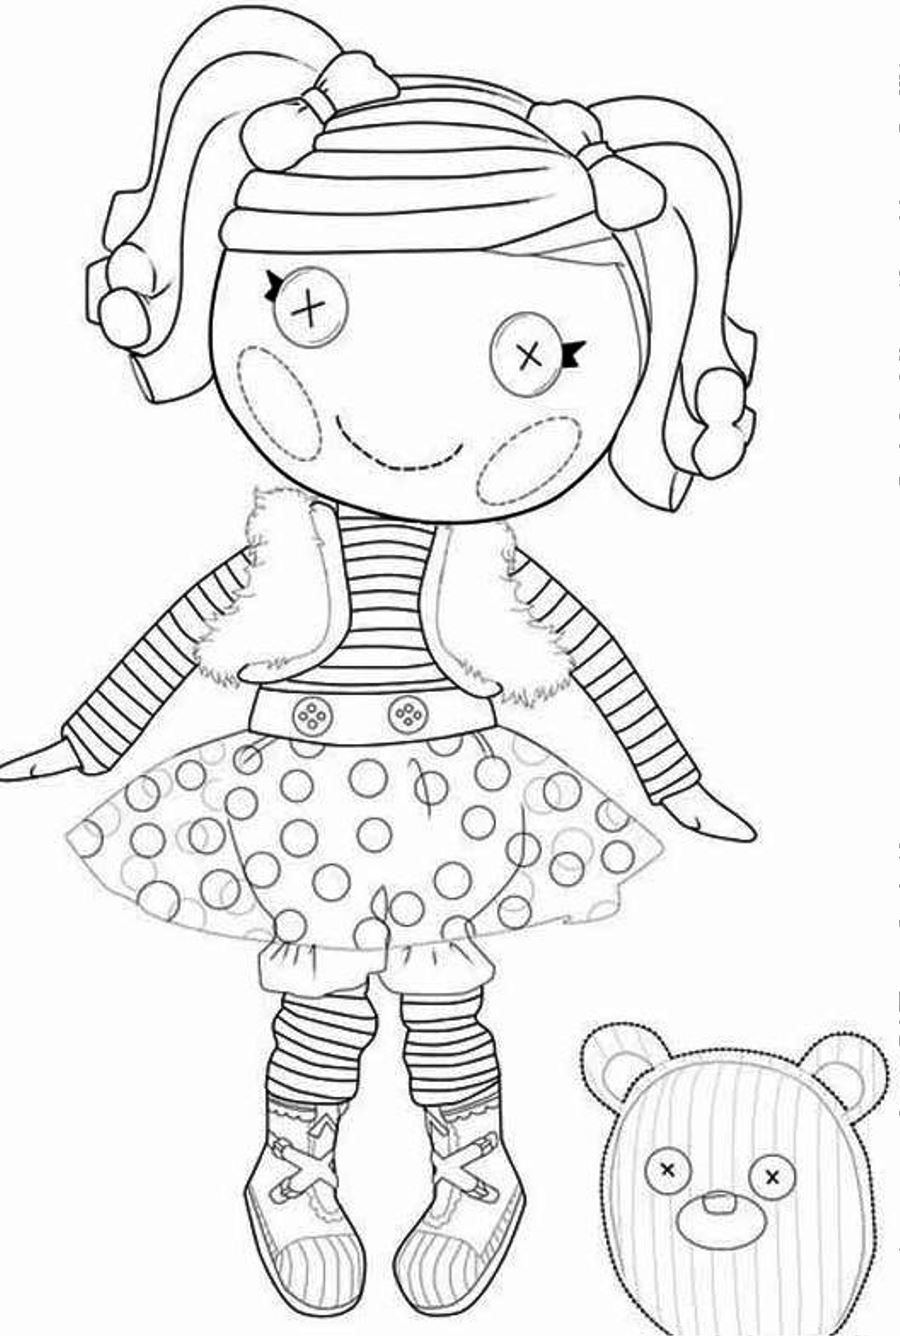 Coloring Pages Lalaloopsy Printable Coloring Pages 1000 images about coloring on pinterest seasons crafts and free printable pages